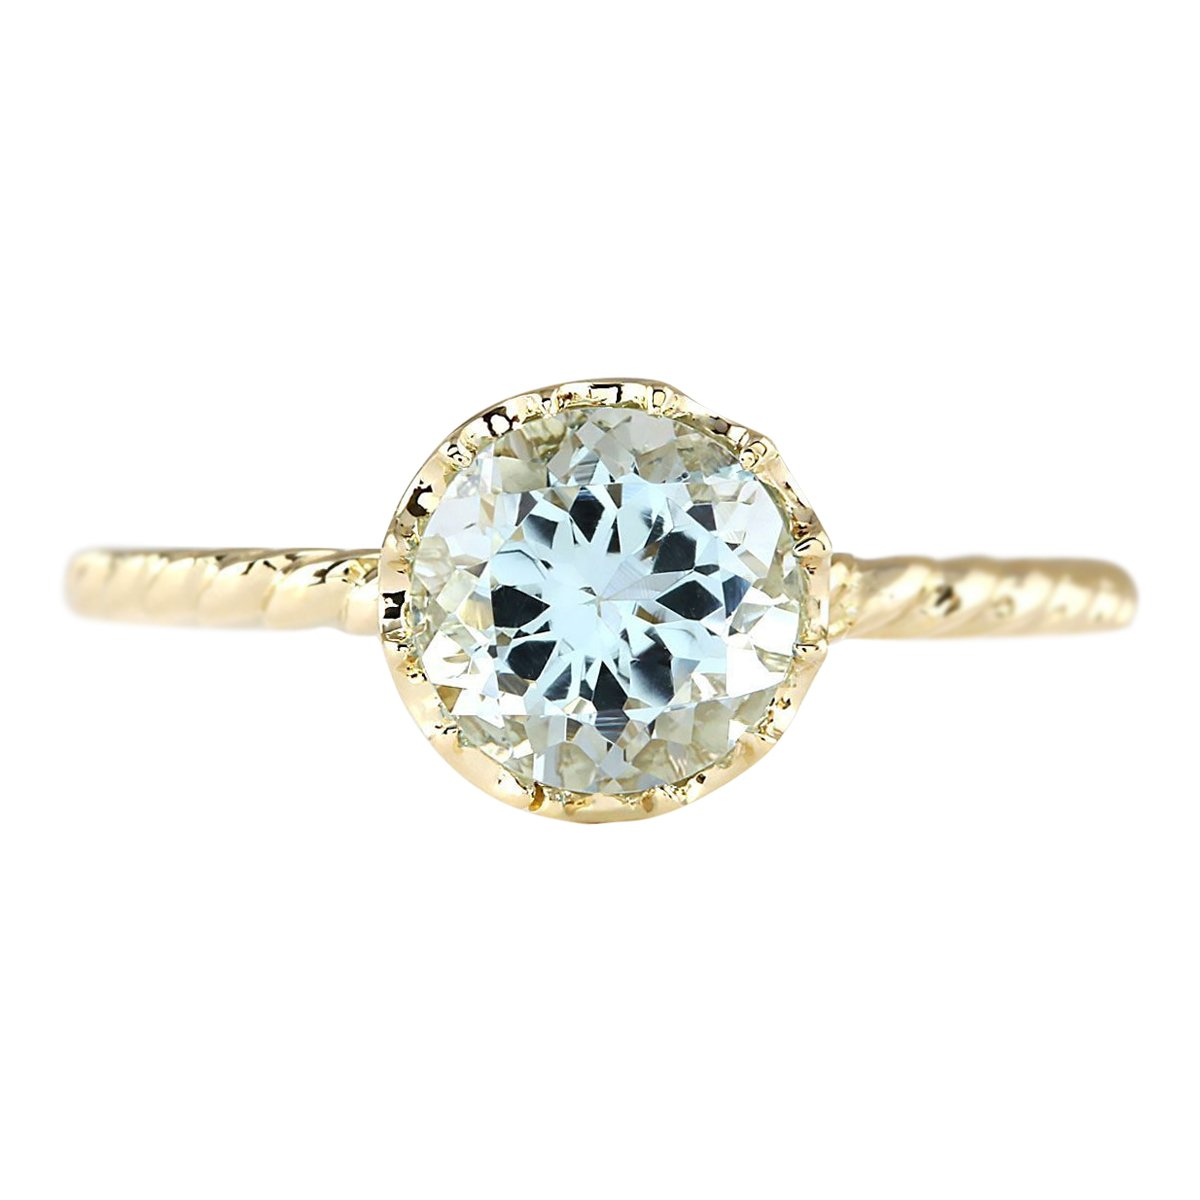 1.5 Carat Natural Blue Aquamarine 14K Yellow Gold Solitaire Promise Ring for Women Exclusively Handcrafted in USA